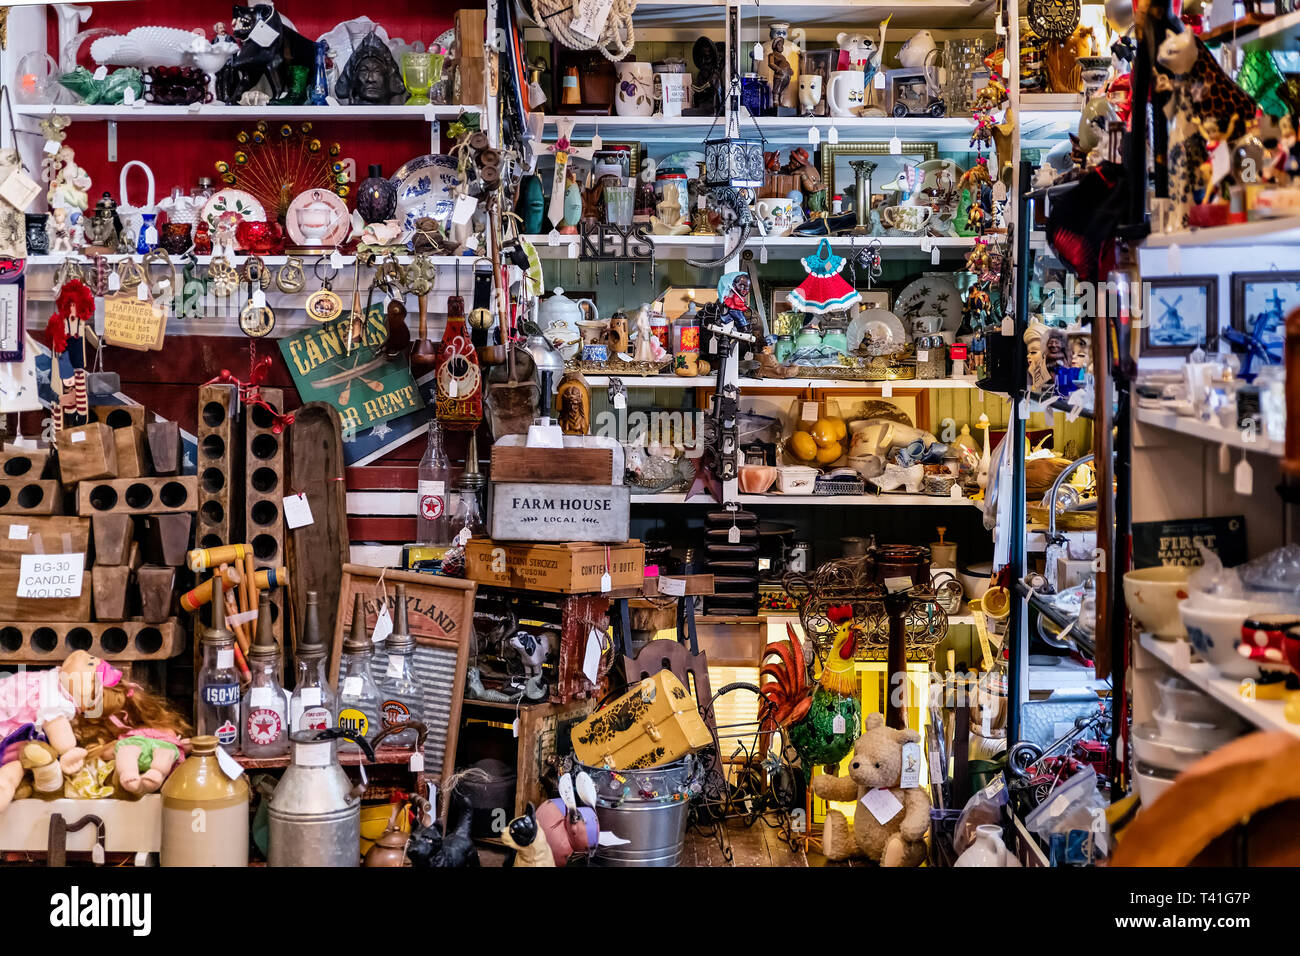 Antique store crowded with collectibles. - Stock Image